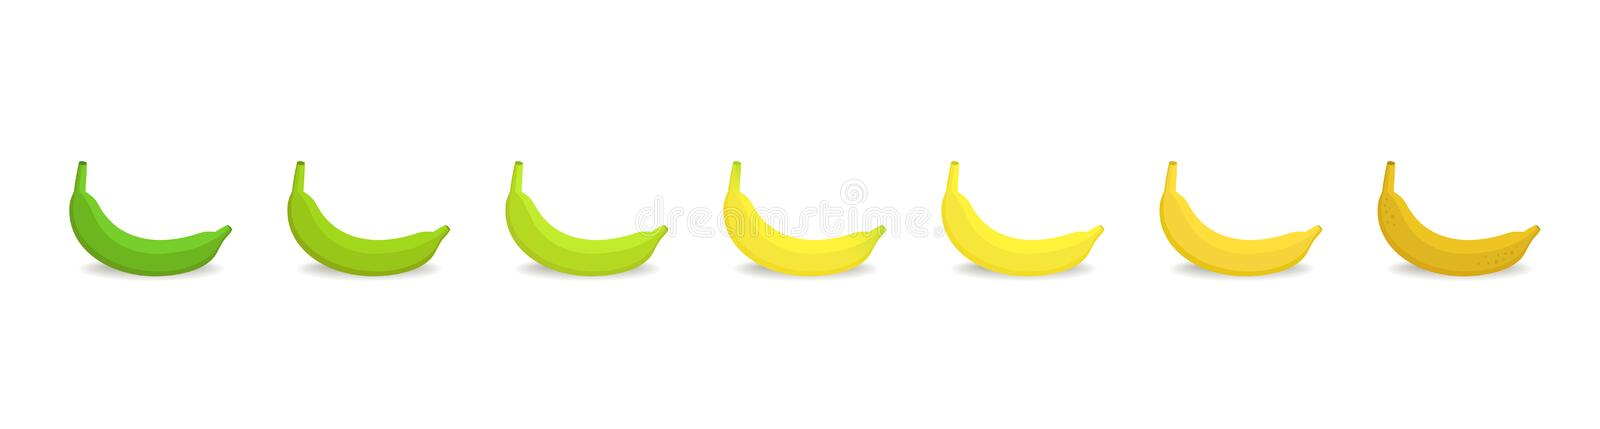 Banana ripeness stages chart. Colour gradation set plant. Ripening plantains. Musa paradisiaca. From green to yellow and brown. Animation period progression royalty free illustration